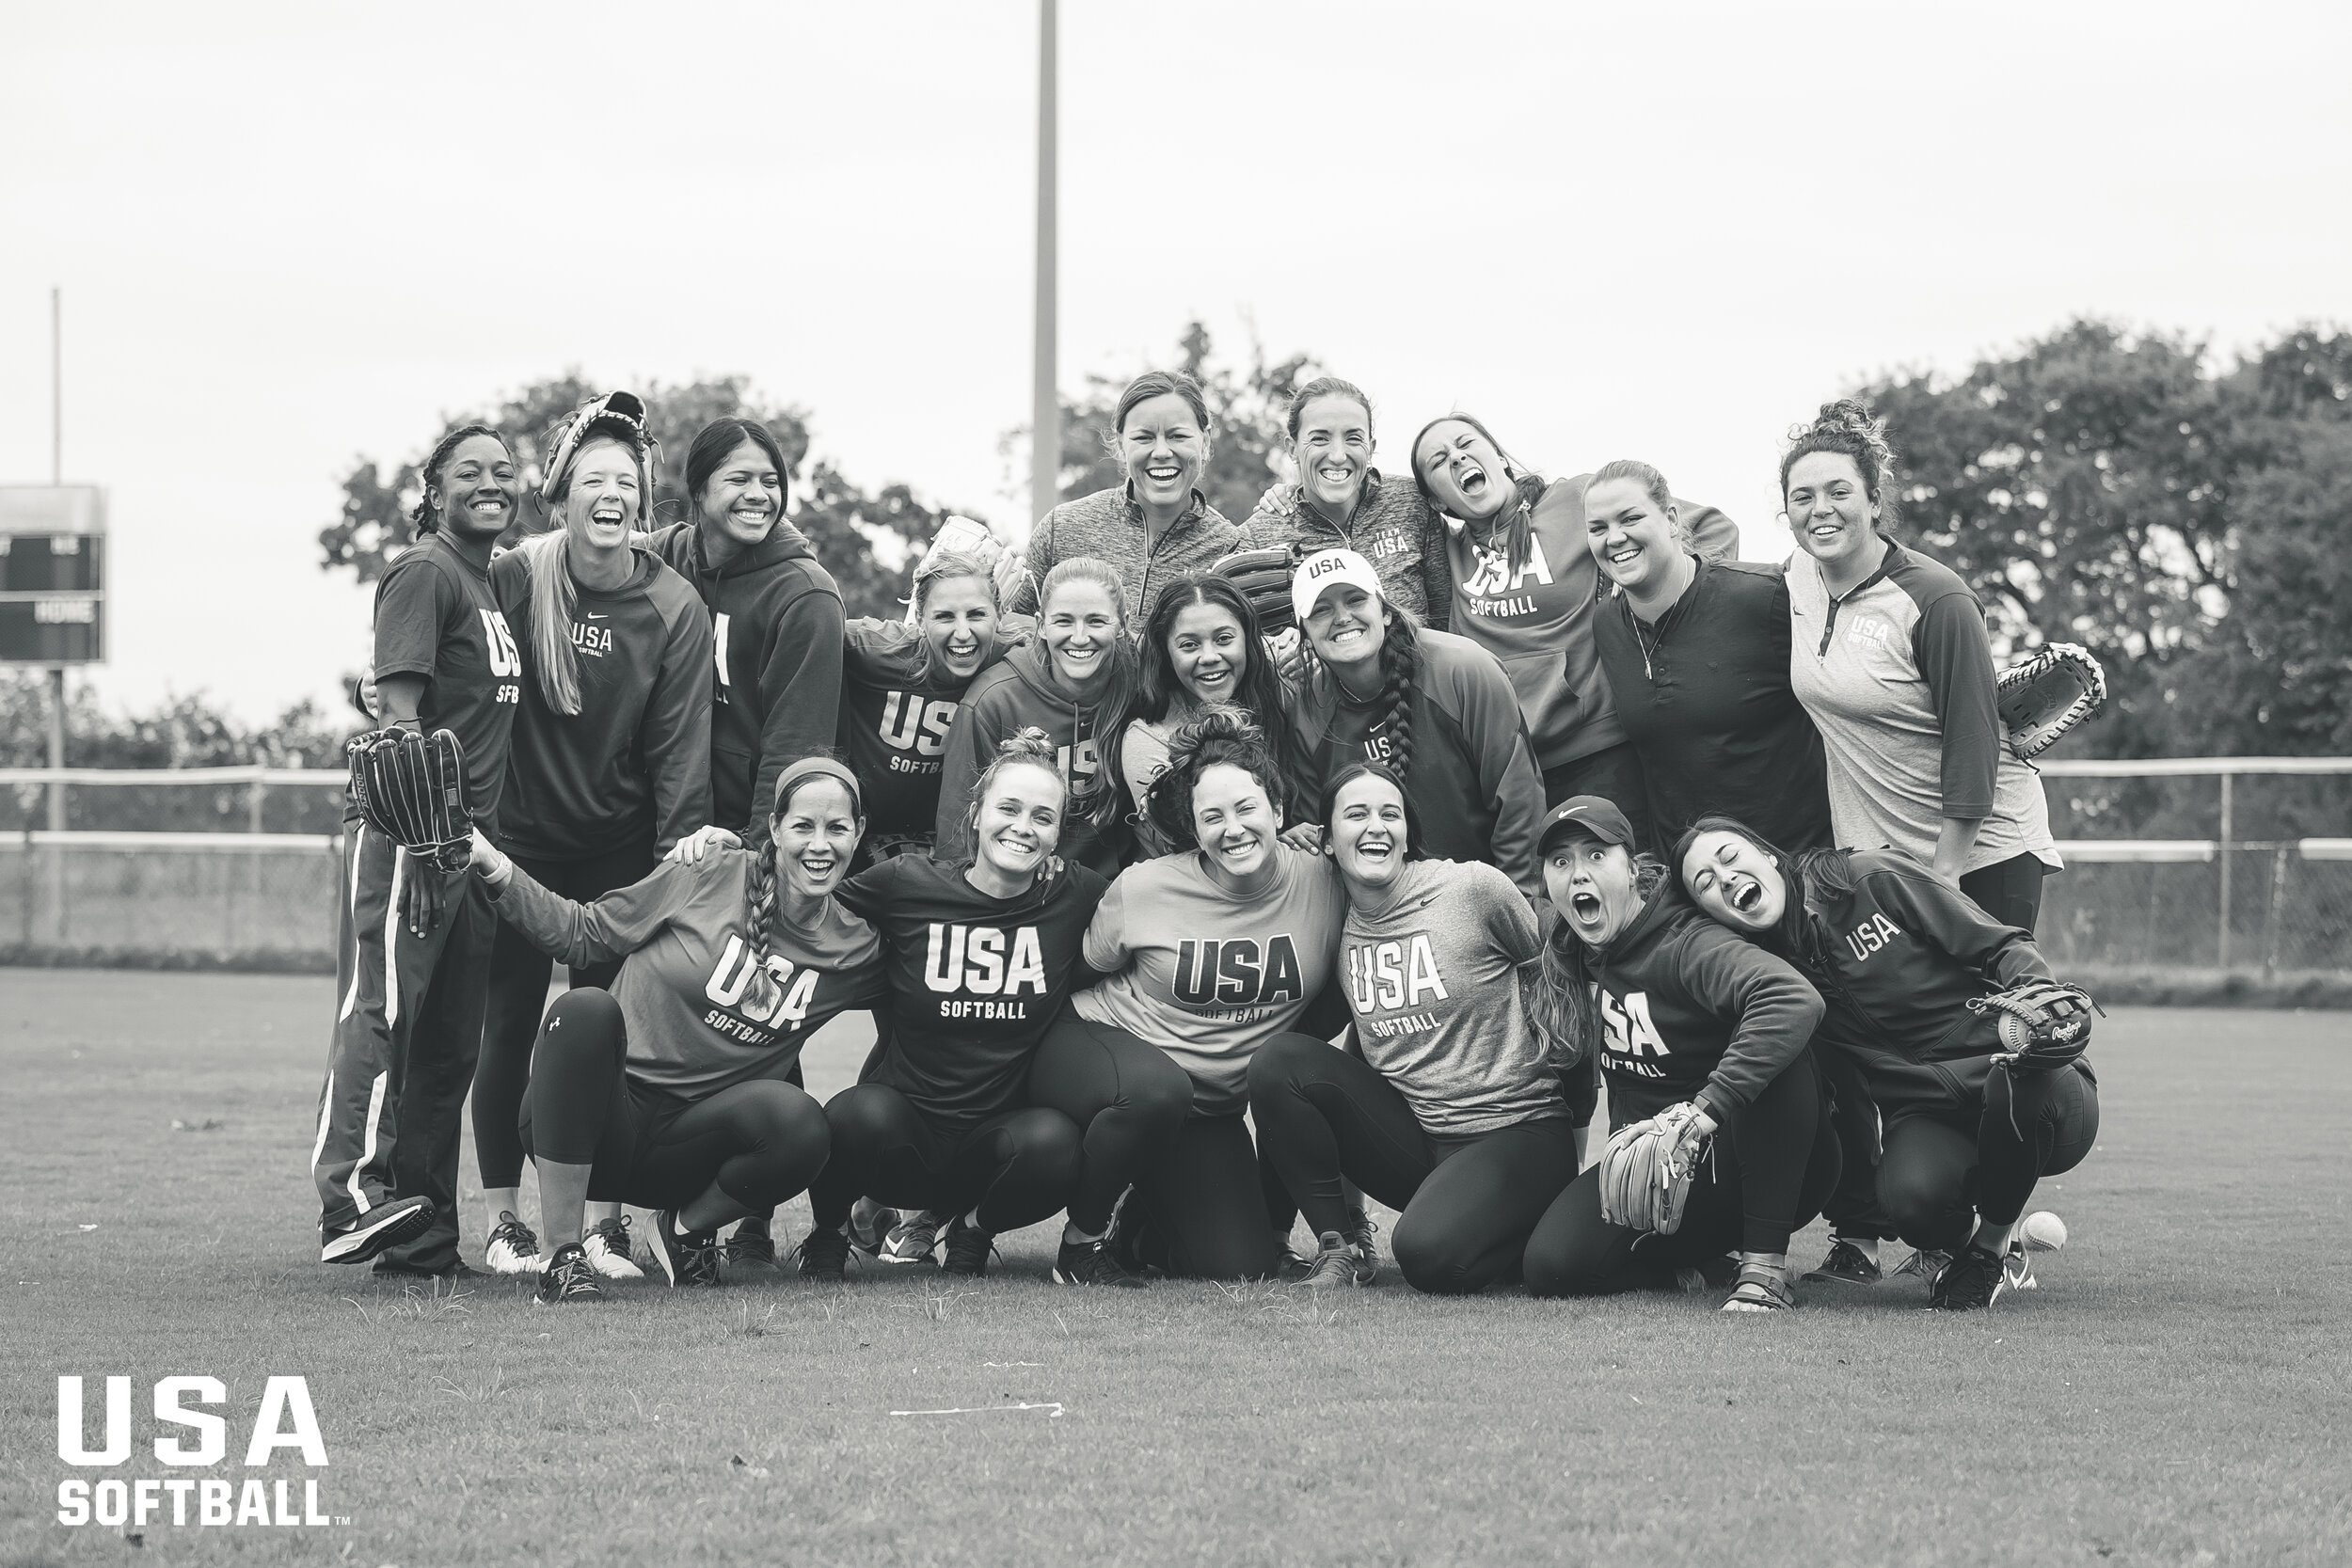 This group is special, and my heart is so full as we go our own ways for a bit. To say this journey will be exciting is an understatement. I really can't wait to write this chapter of USA Softball with these 17 women.